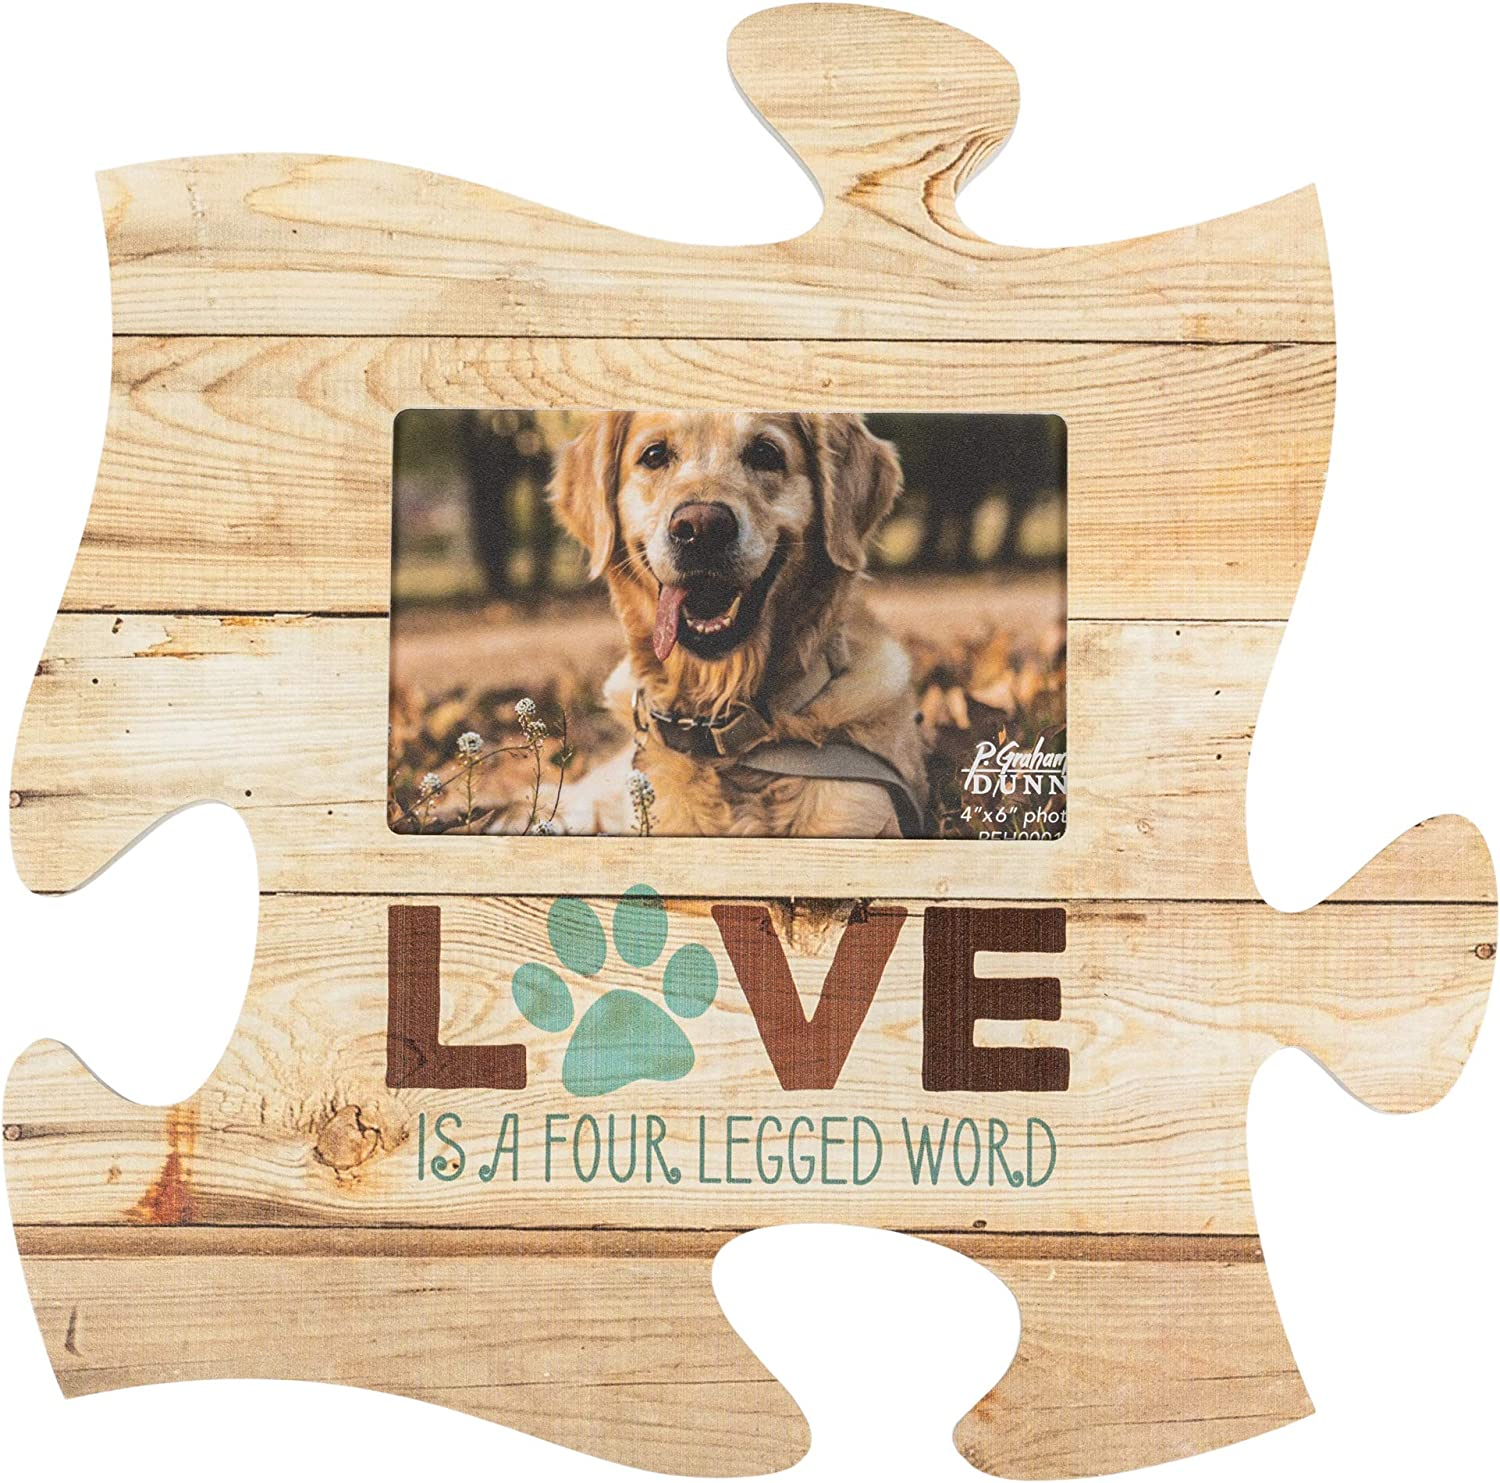 P. Graham Dunn Love is a Four Legged Word 12 x 12 Wood Wall Art Puzzle Piece 4x6 Frame Plaque